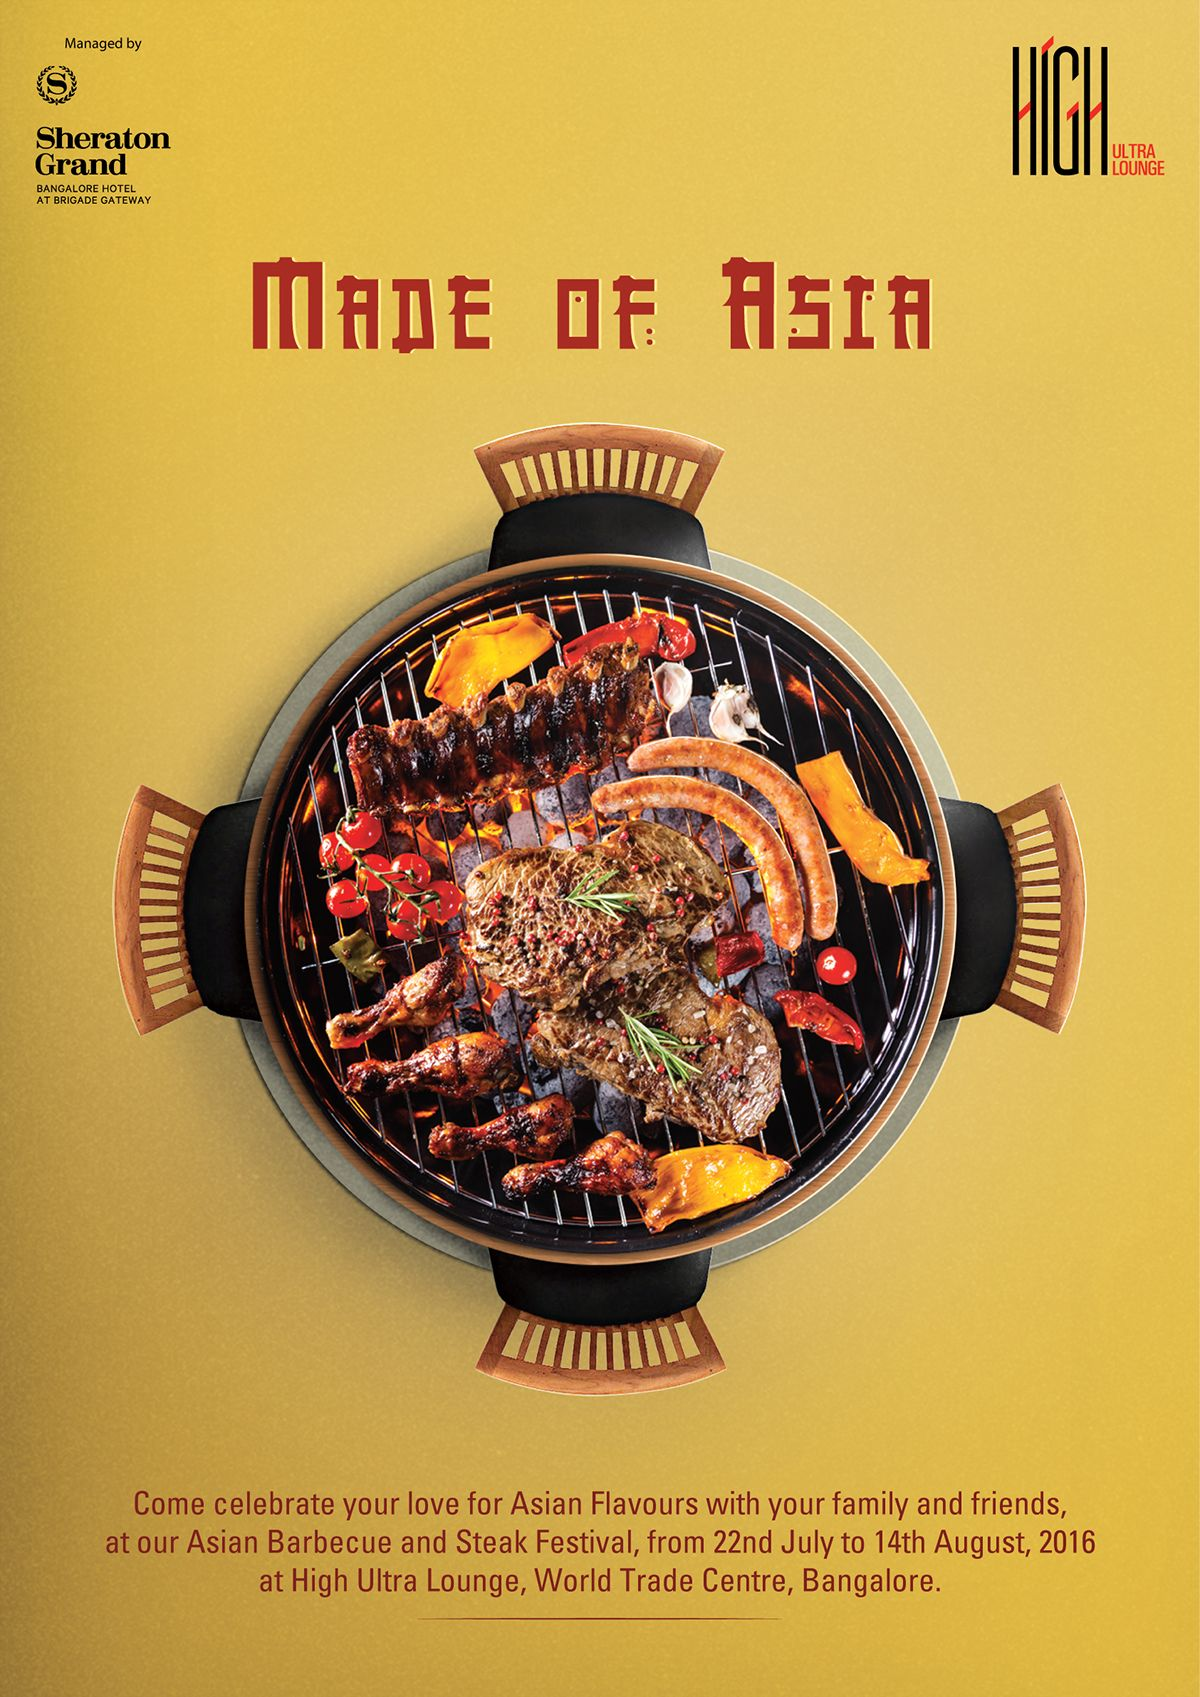 Poster Cuisine Asian Barbecue Poster Design On Behance Restaurant Menu And